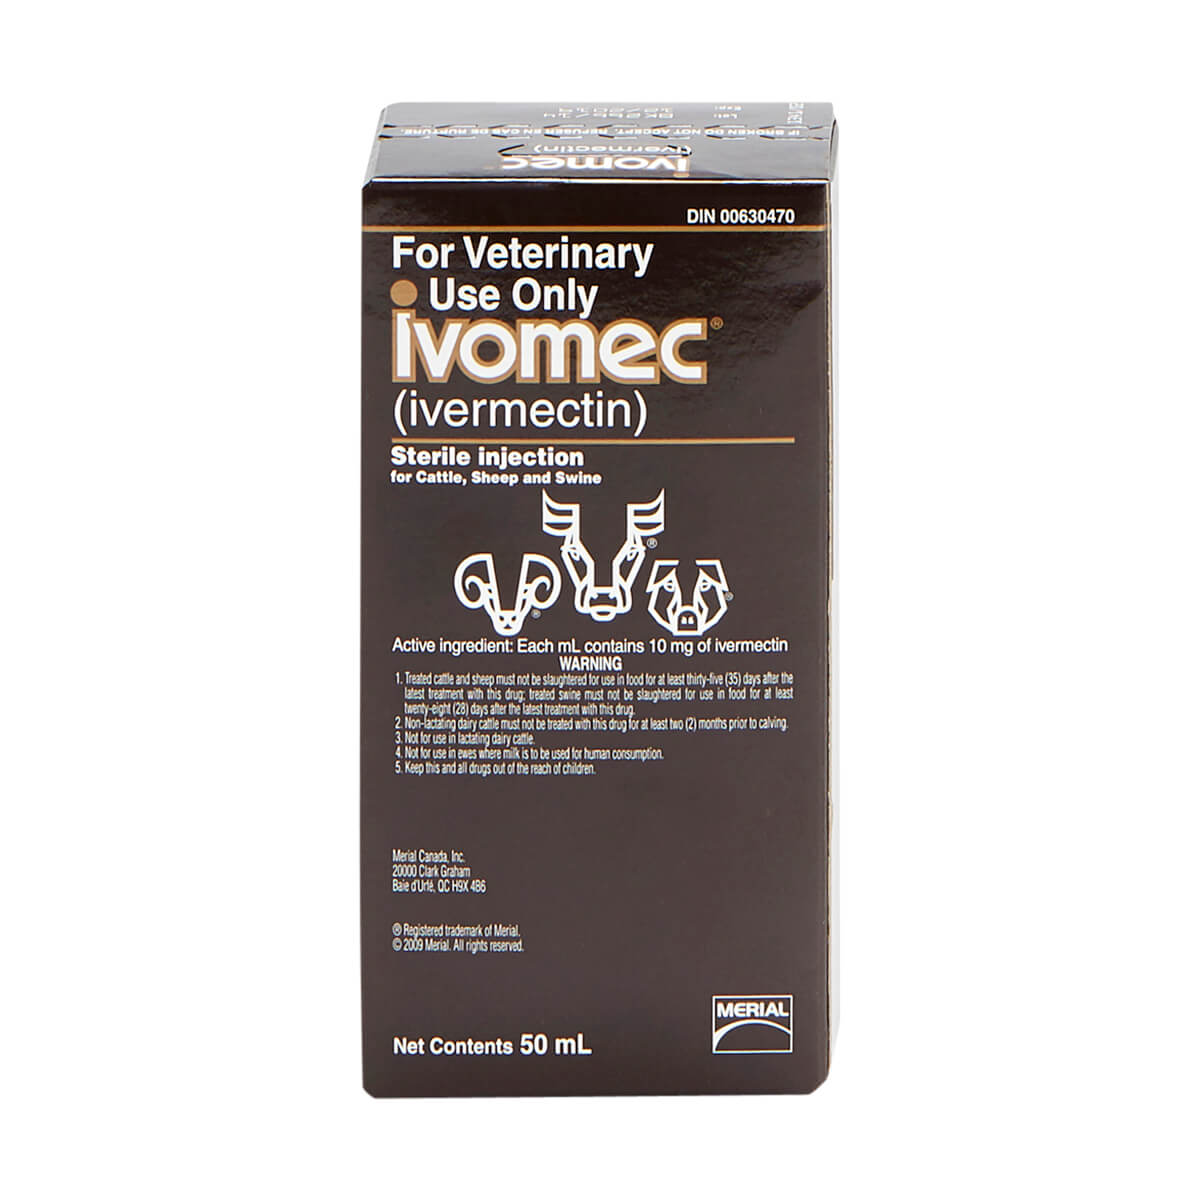 Ivomec® Injection for Cattle, Sheep and Swine 50 mL